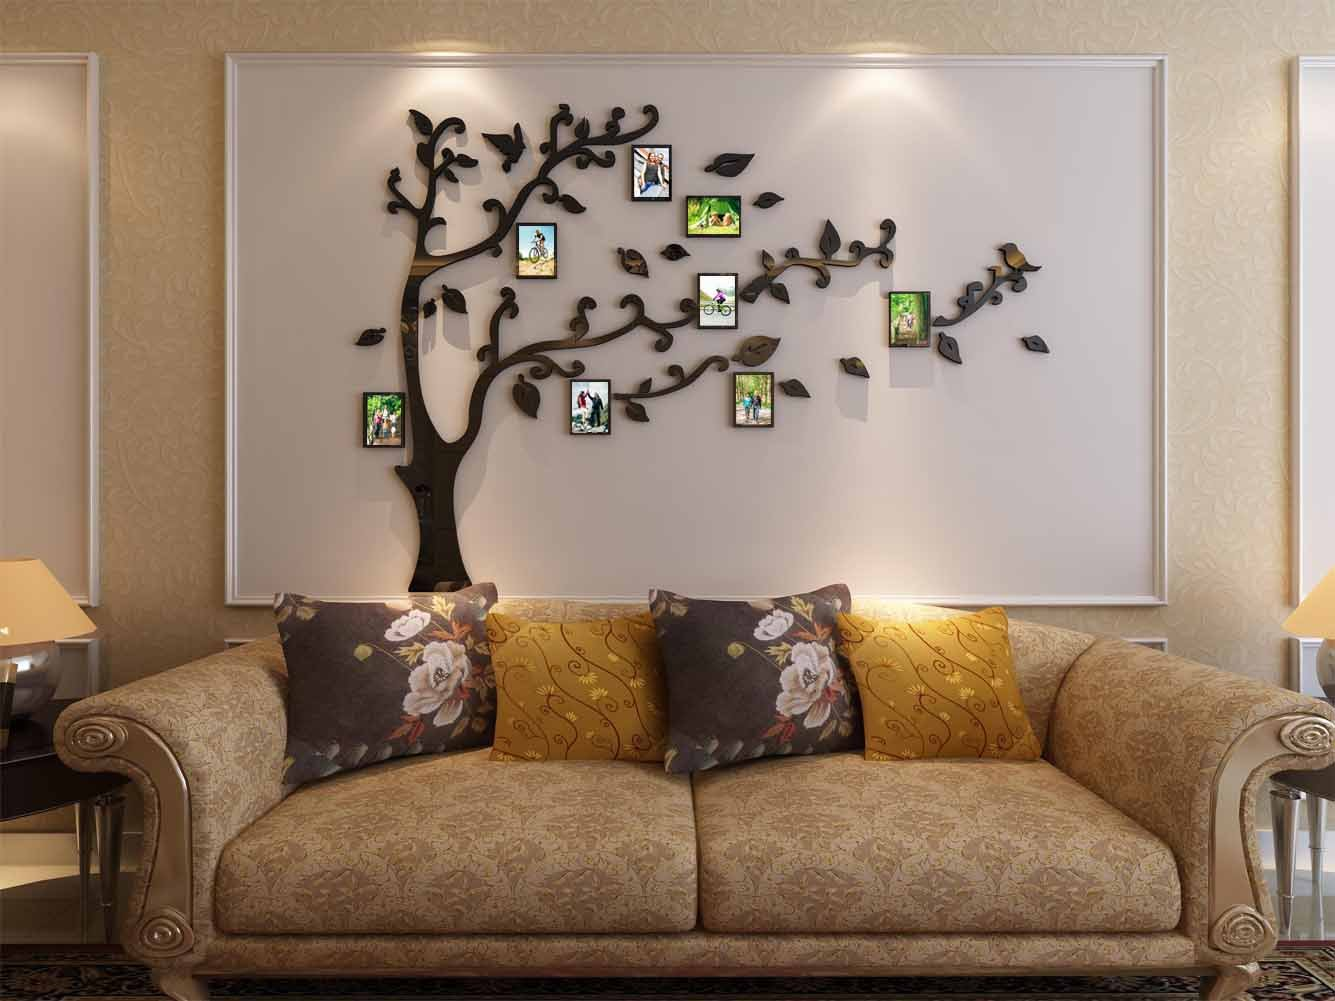 3d Picture Frames Tree Wall Murals for Living Room Bedroom Sofa Backdrop Tv Wall Background, Originality Stickers, Wall Decor Decal Sticker (50(H) x 70(W) inches) by DecorSmart (Image #3)